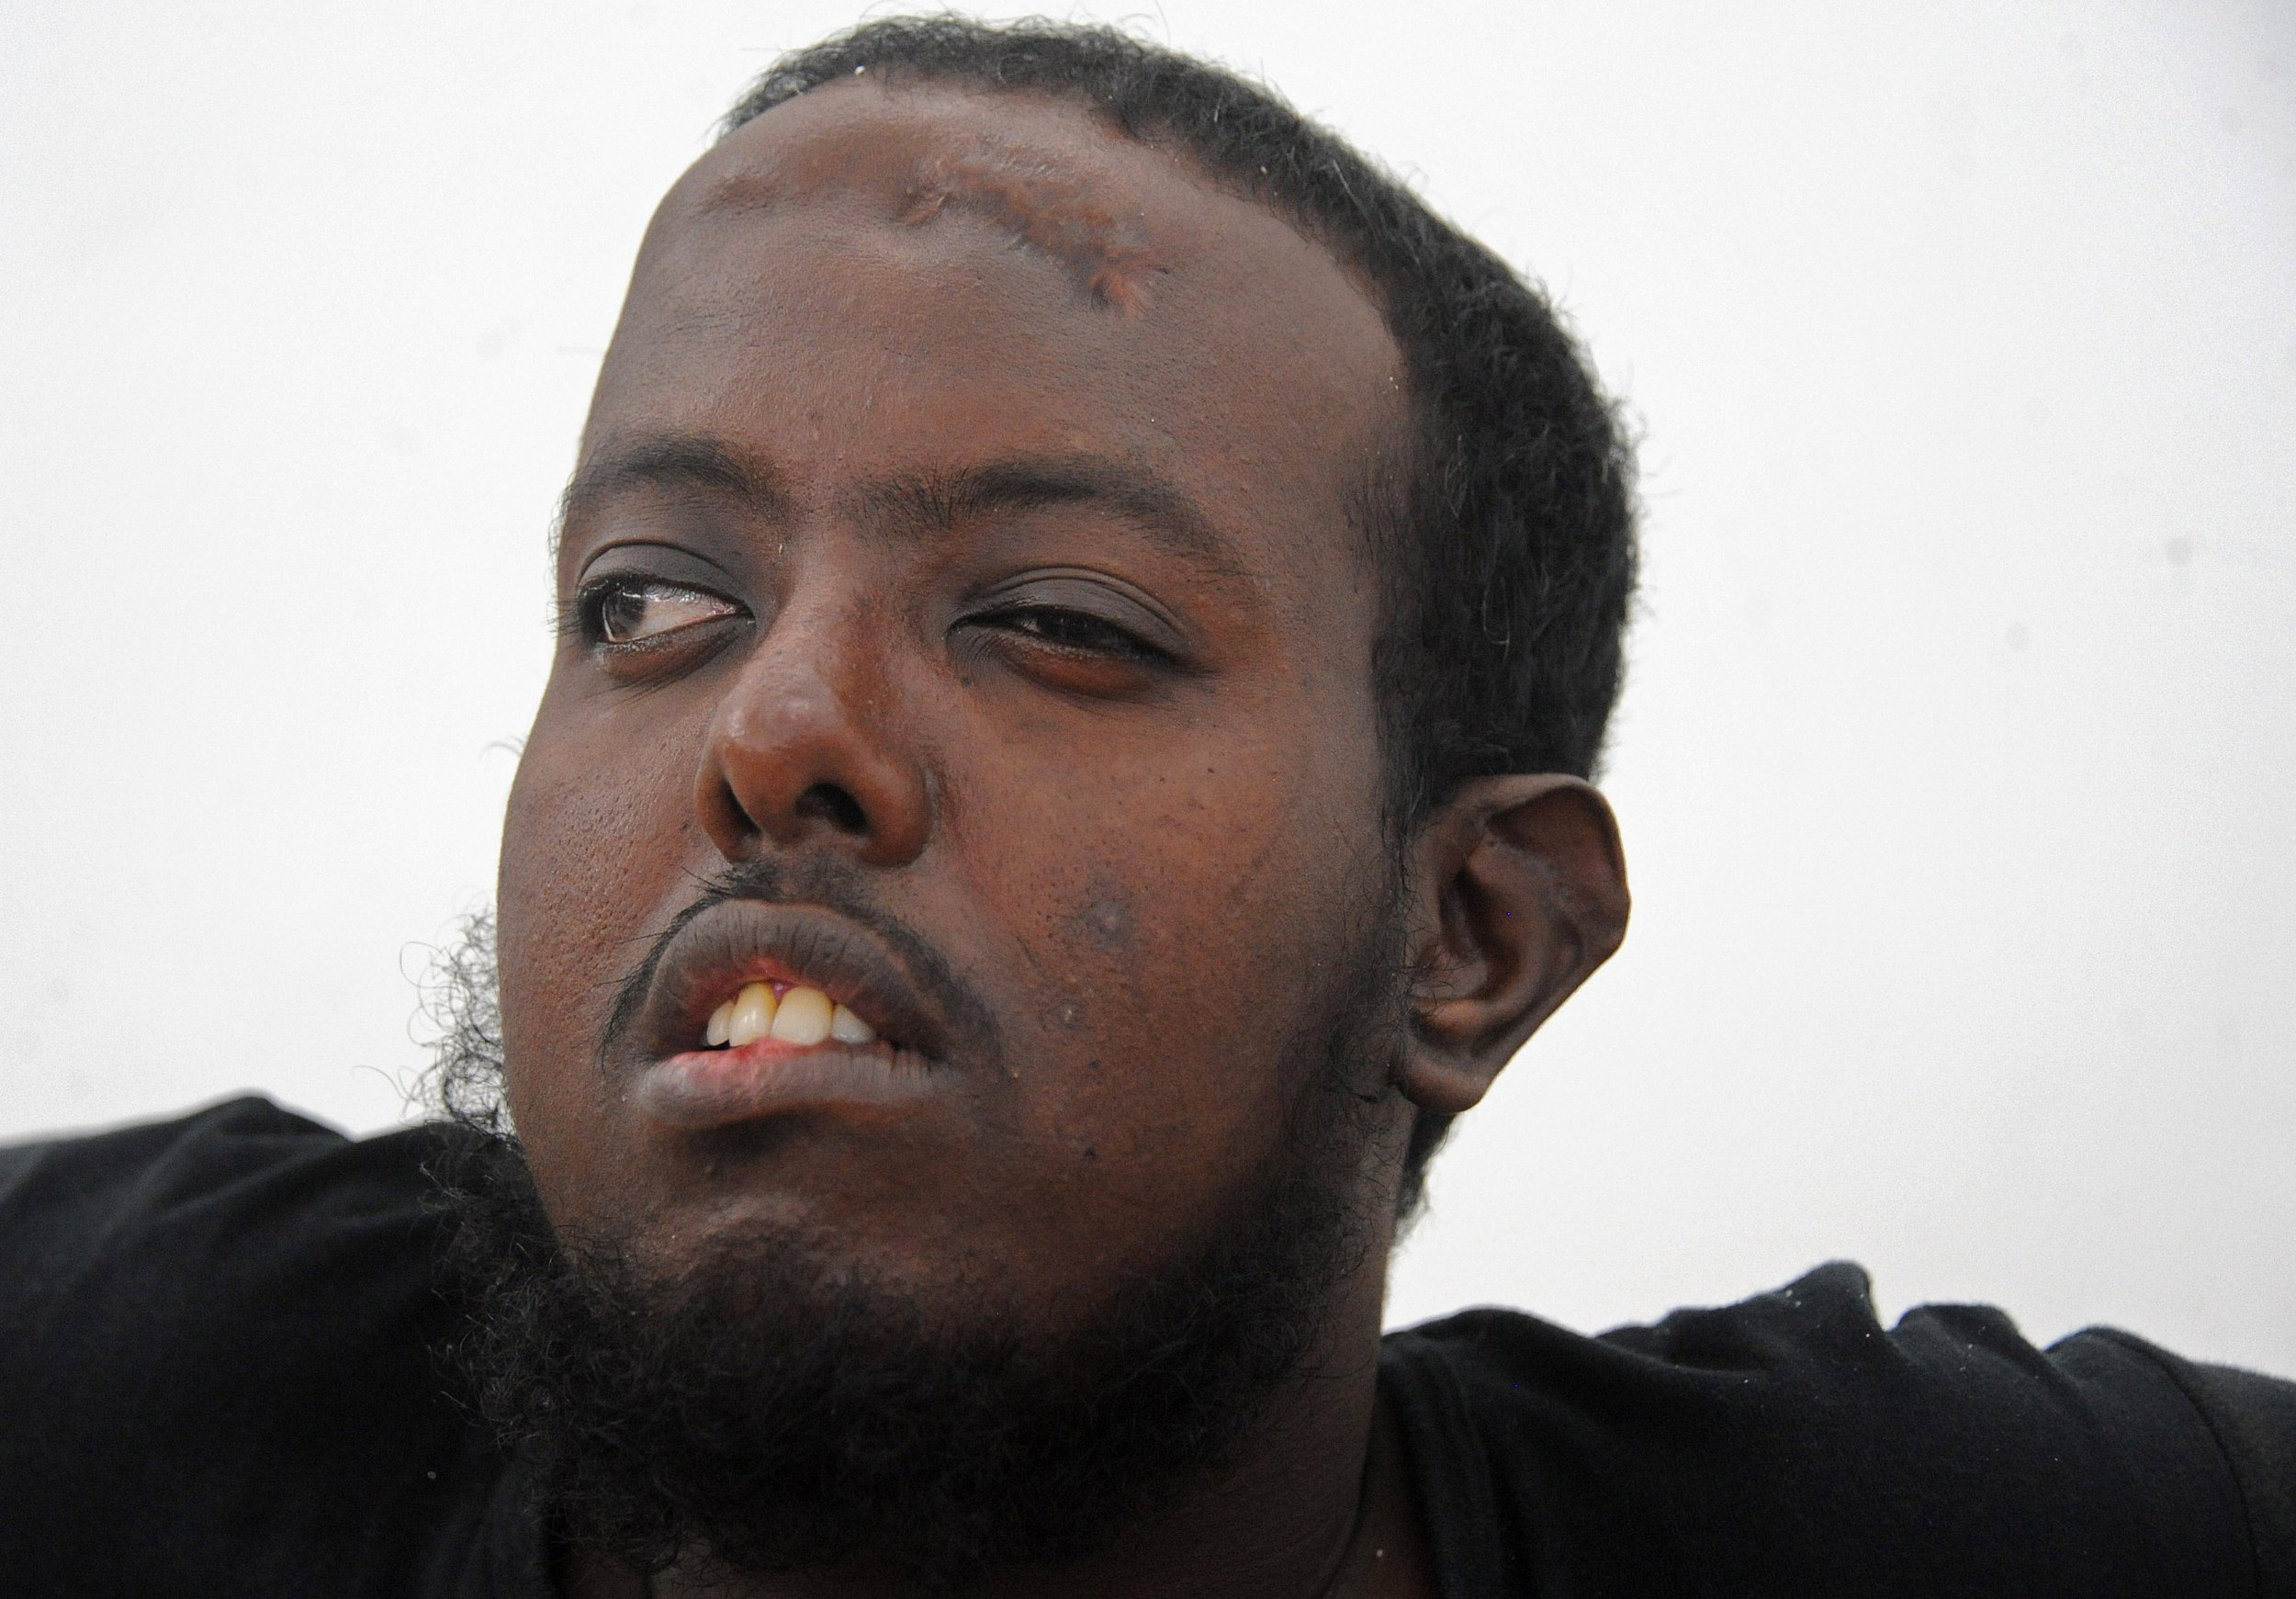 Al-Shabab journalist Hassan Hanafi is sentenced to death.